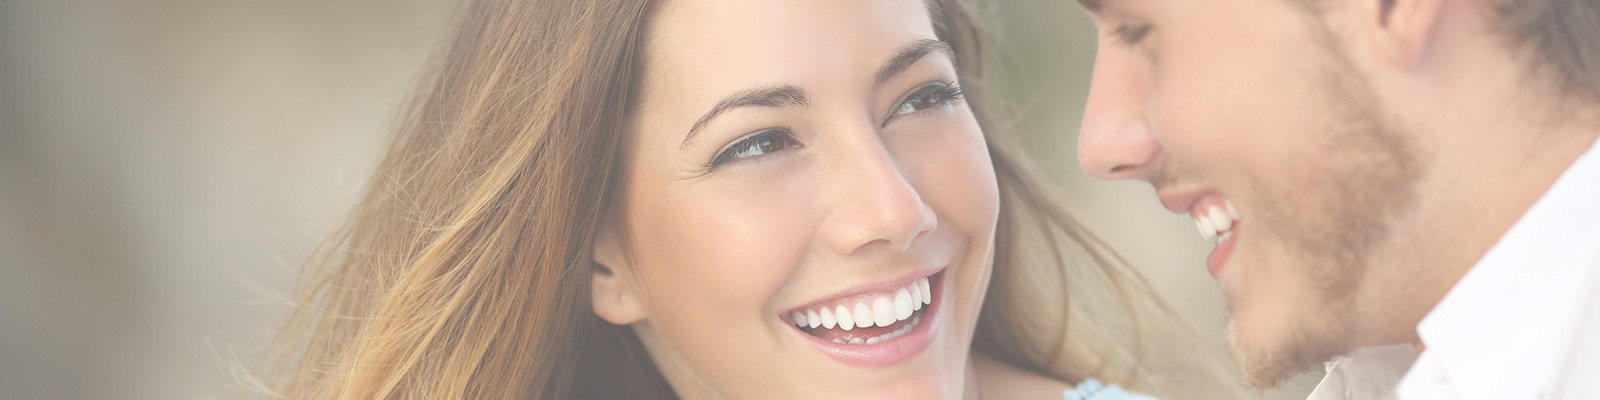 tooth whitening collegeville | Advanced Dentistry of Collegeville